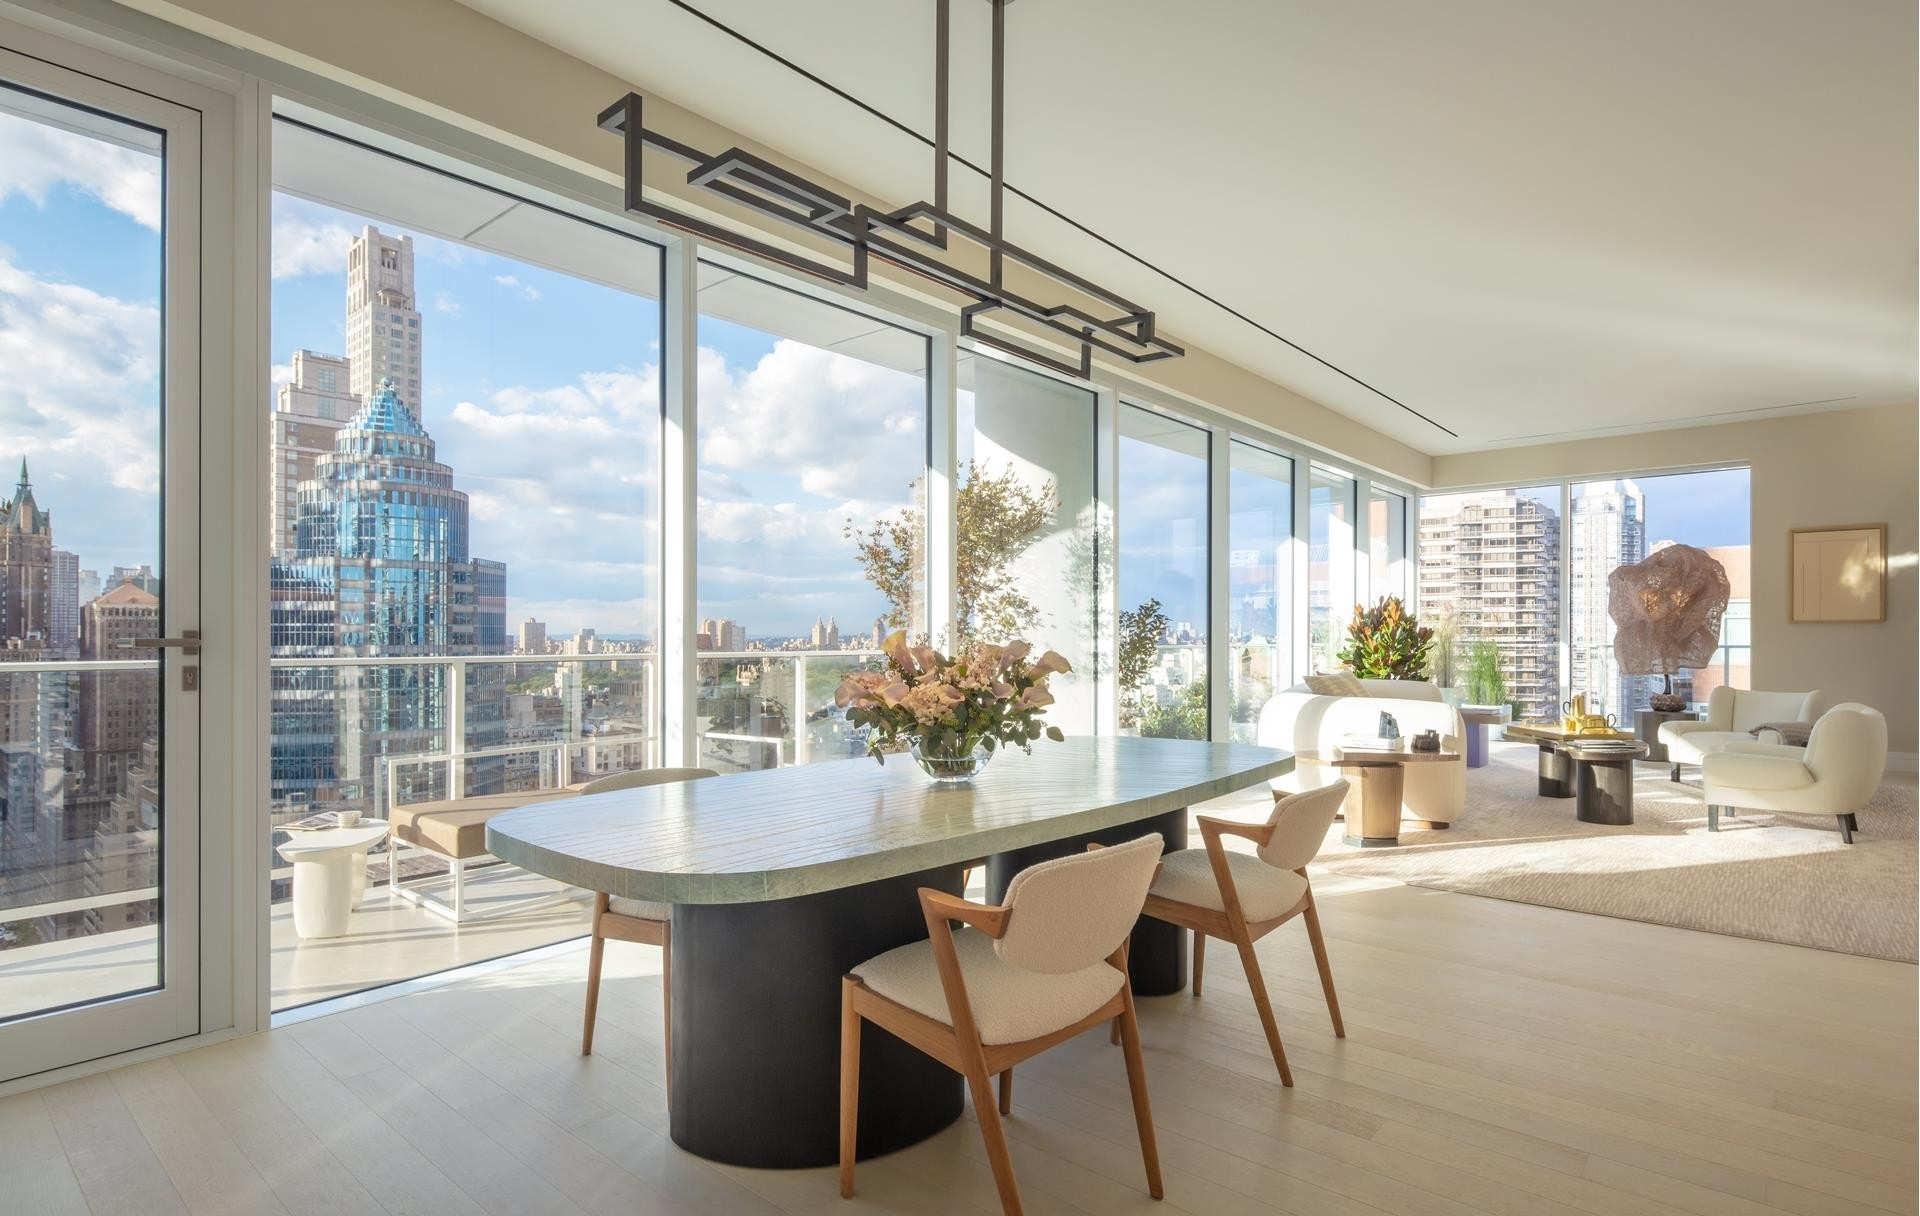 Property at 200 East 59th St, 26E Midtown Manhattan, New York, NY 10022